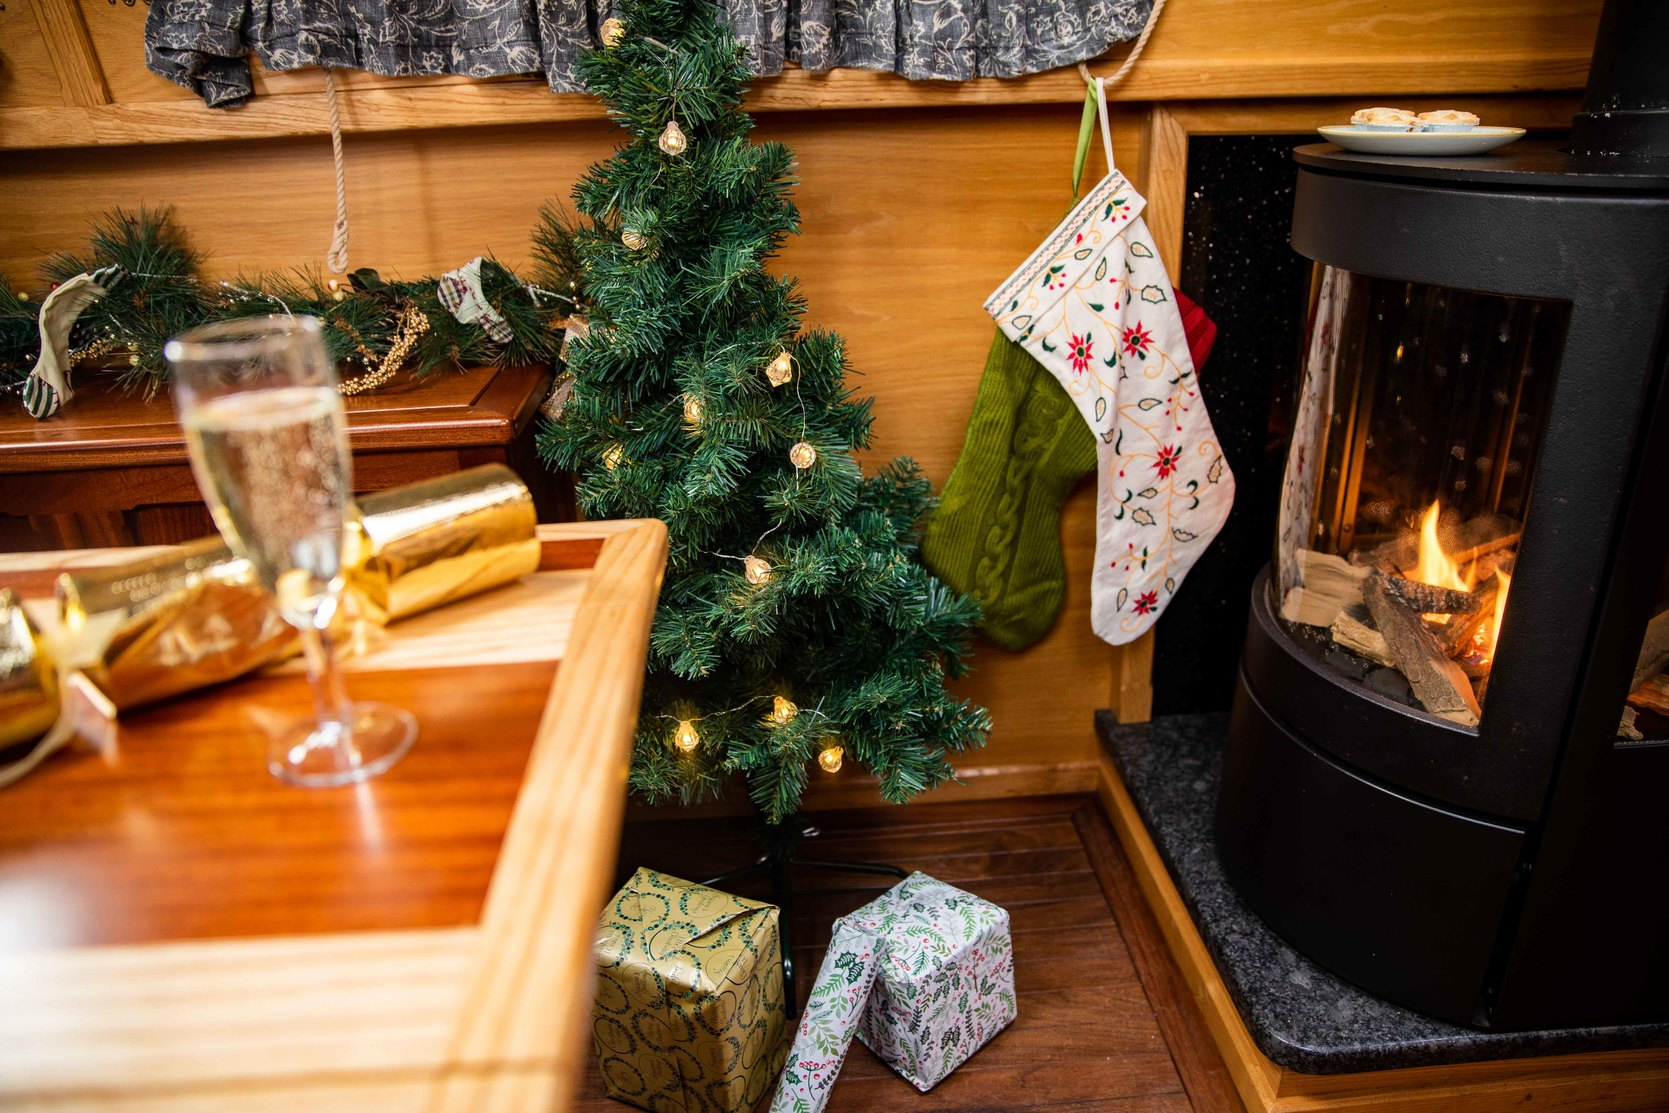 Presents under a tree by a canal boat sove